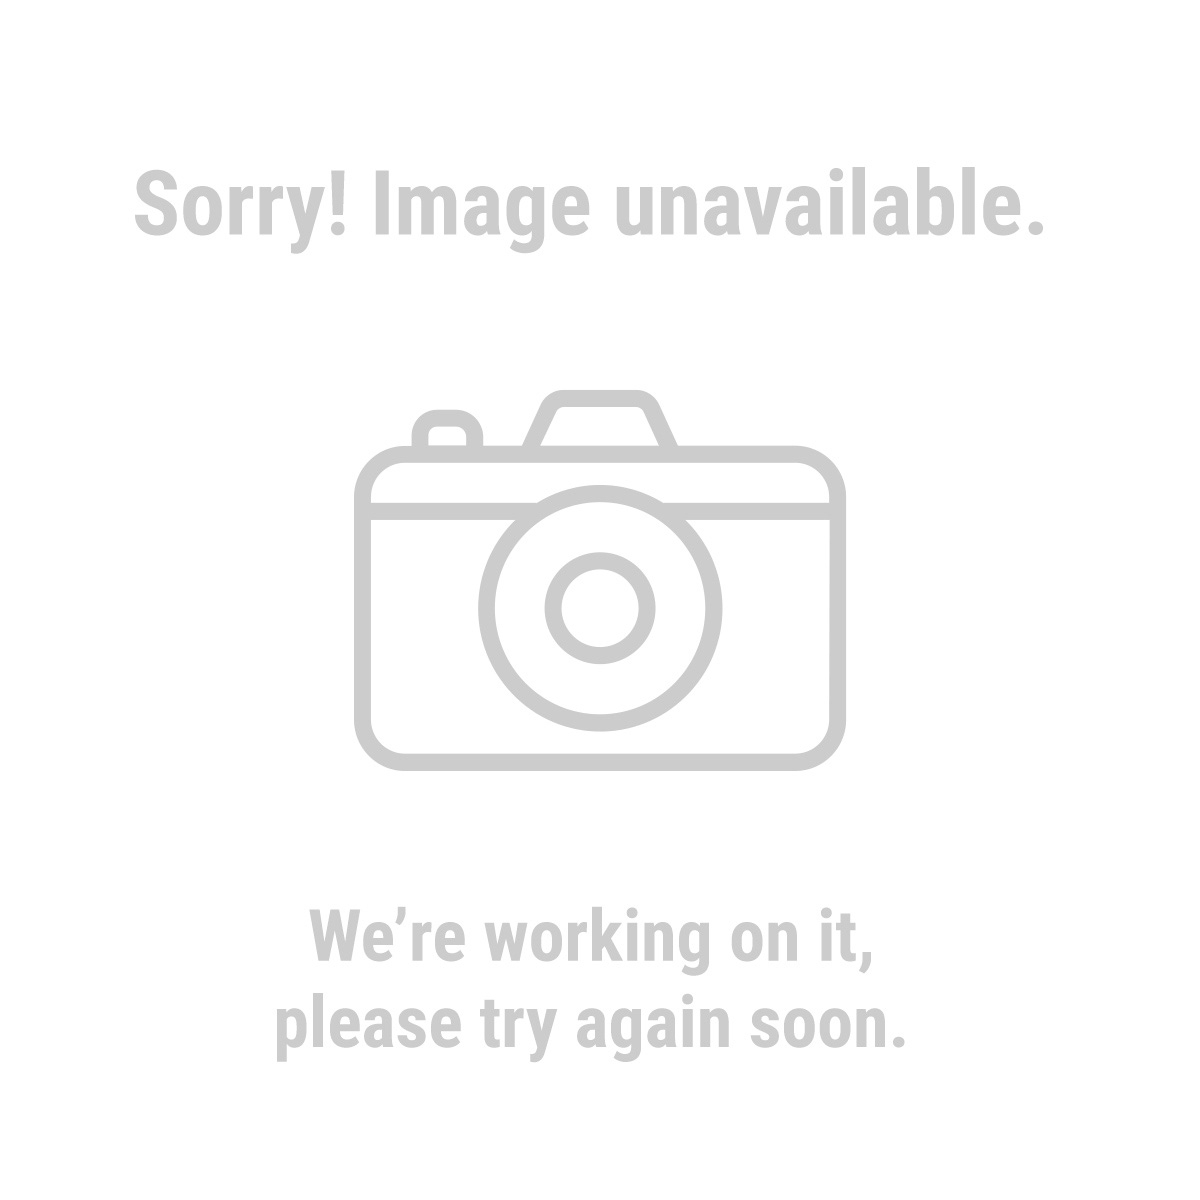 Warrior 61549 1/16 in. Titanium Nitride Coated High Speed Steel Drill Bits,  Piece